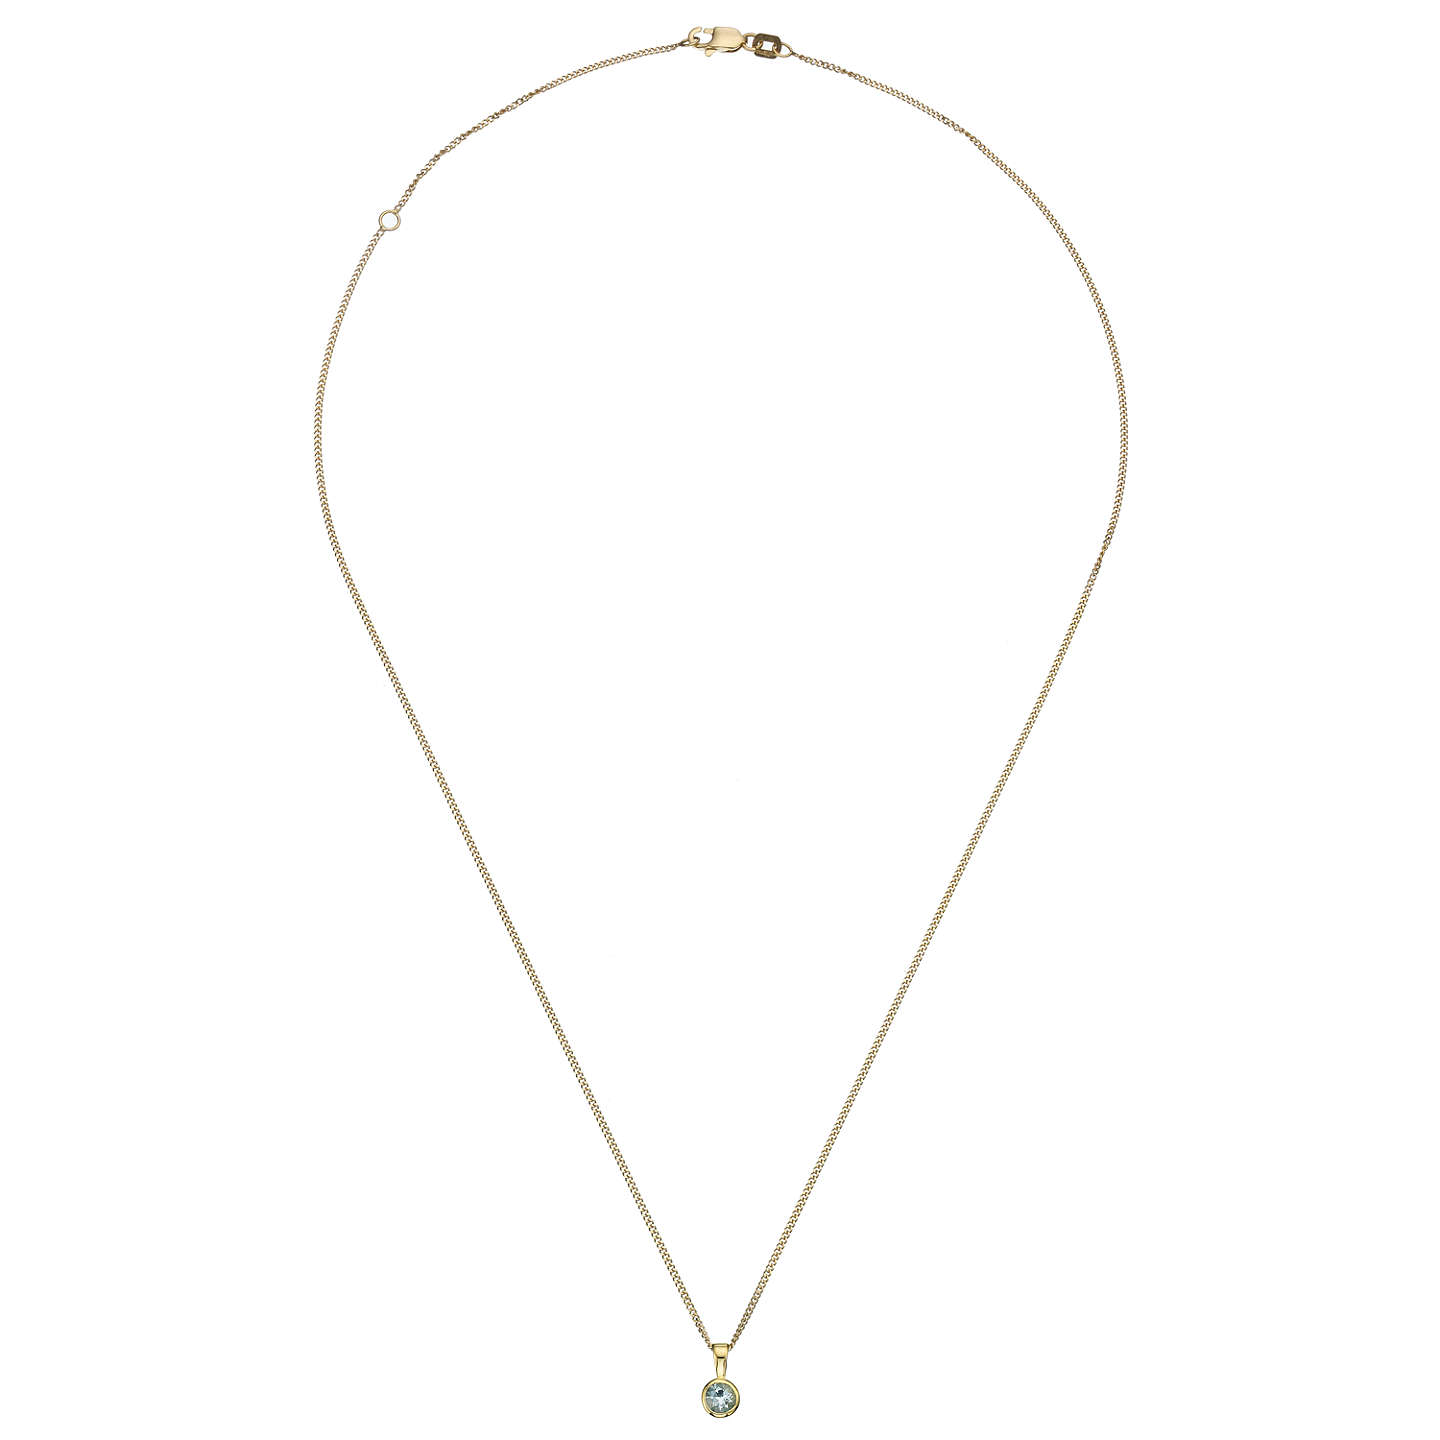 BuyA B Davis 9ct Yellow Gold Round Gemstone Rubover Pendant Necklace, Aquamarine Online at johnlewis.com